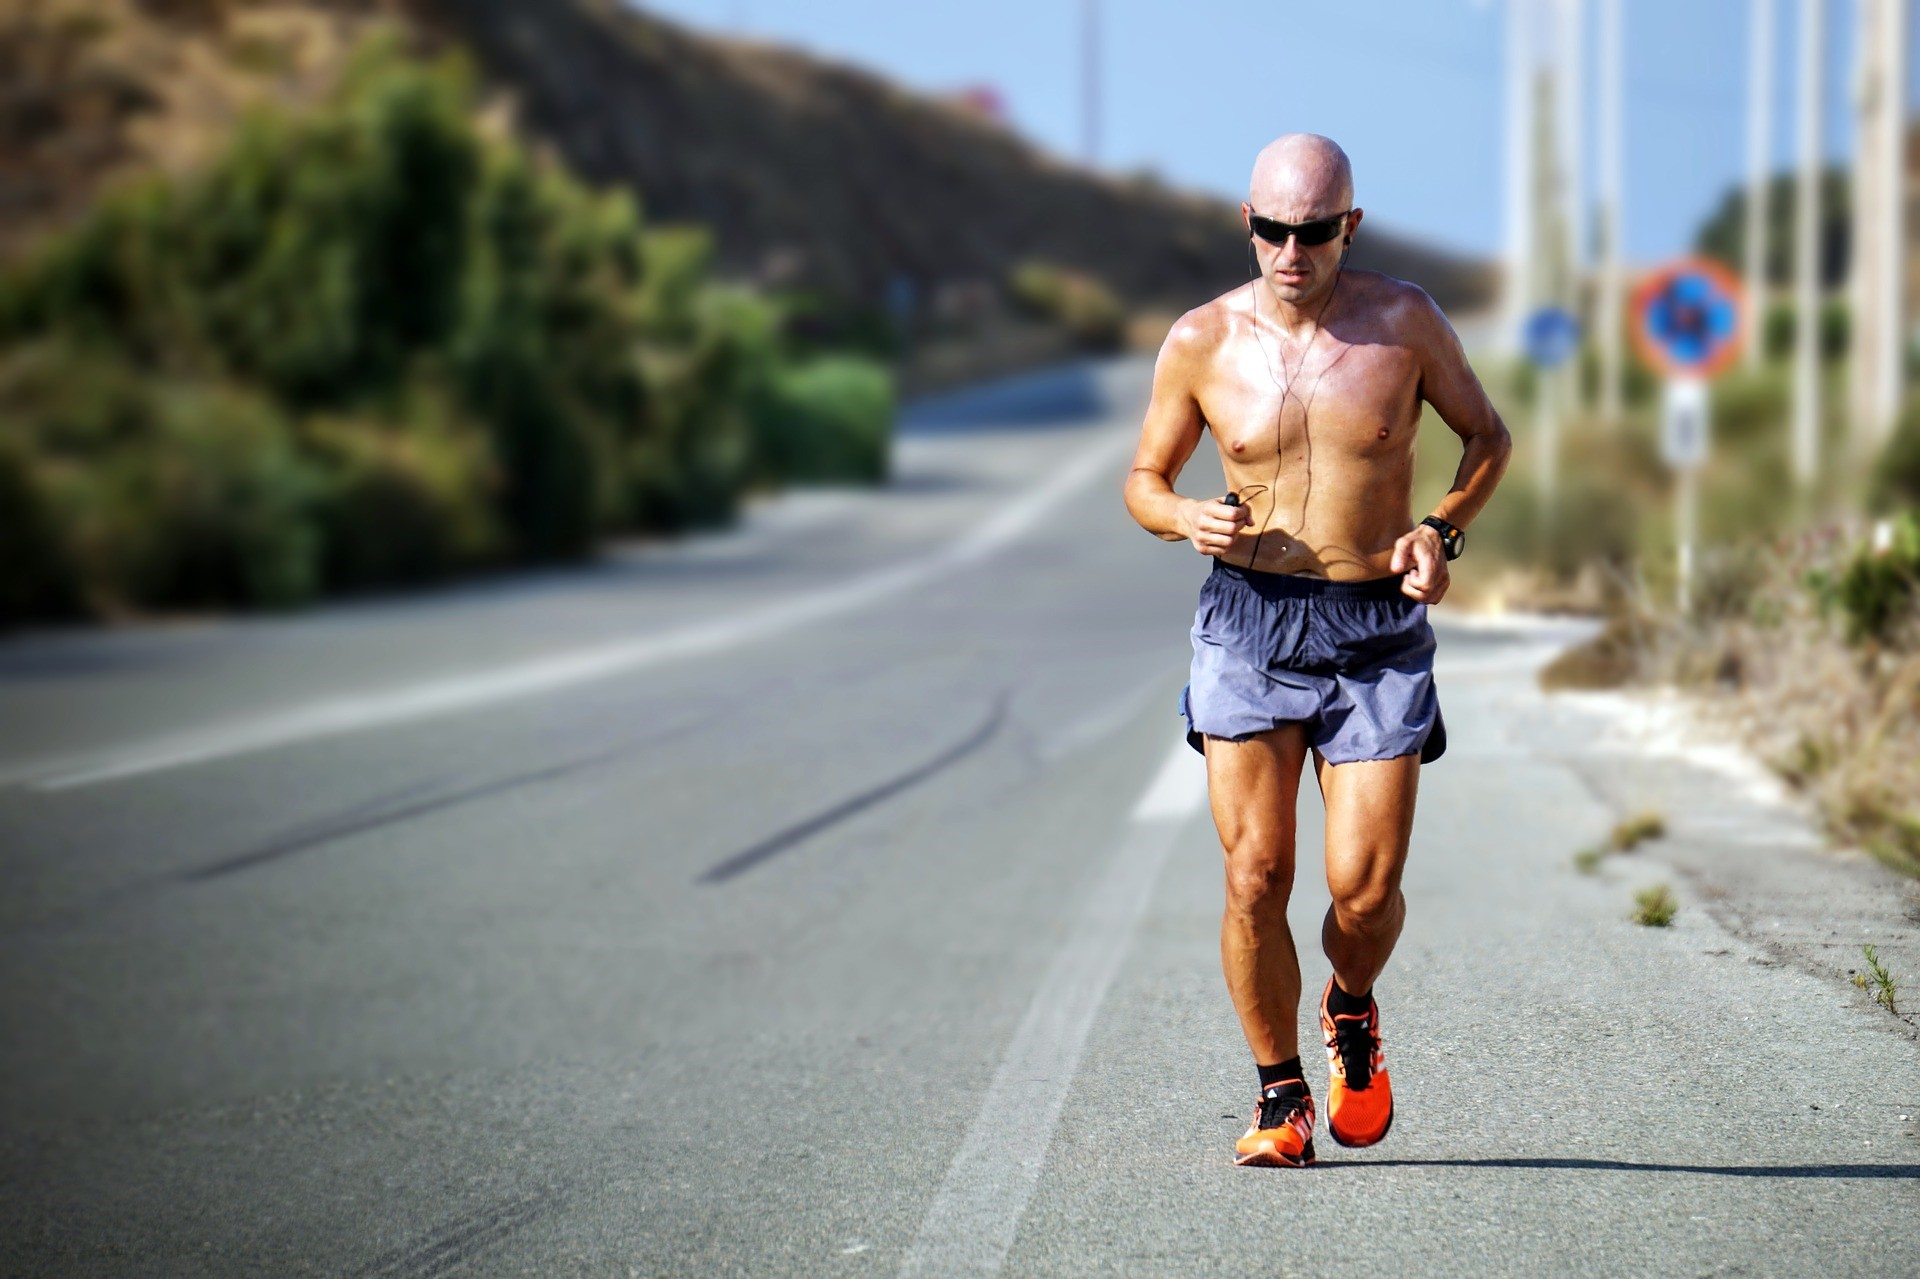 Benefits of Running; 5 Ways Running Improves Your Health